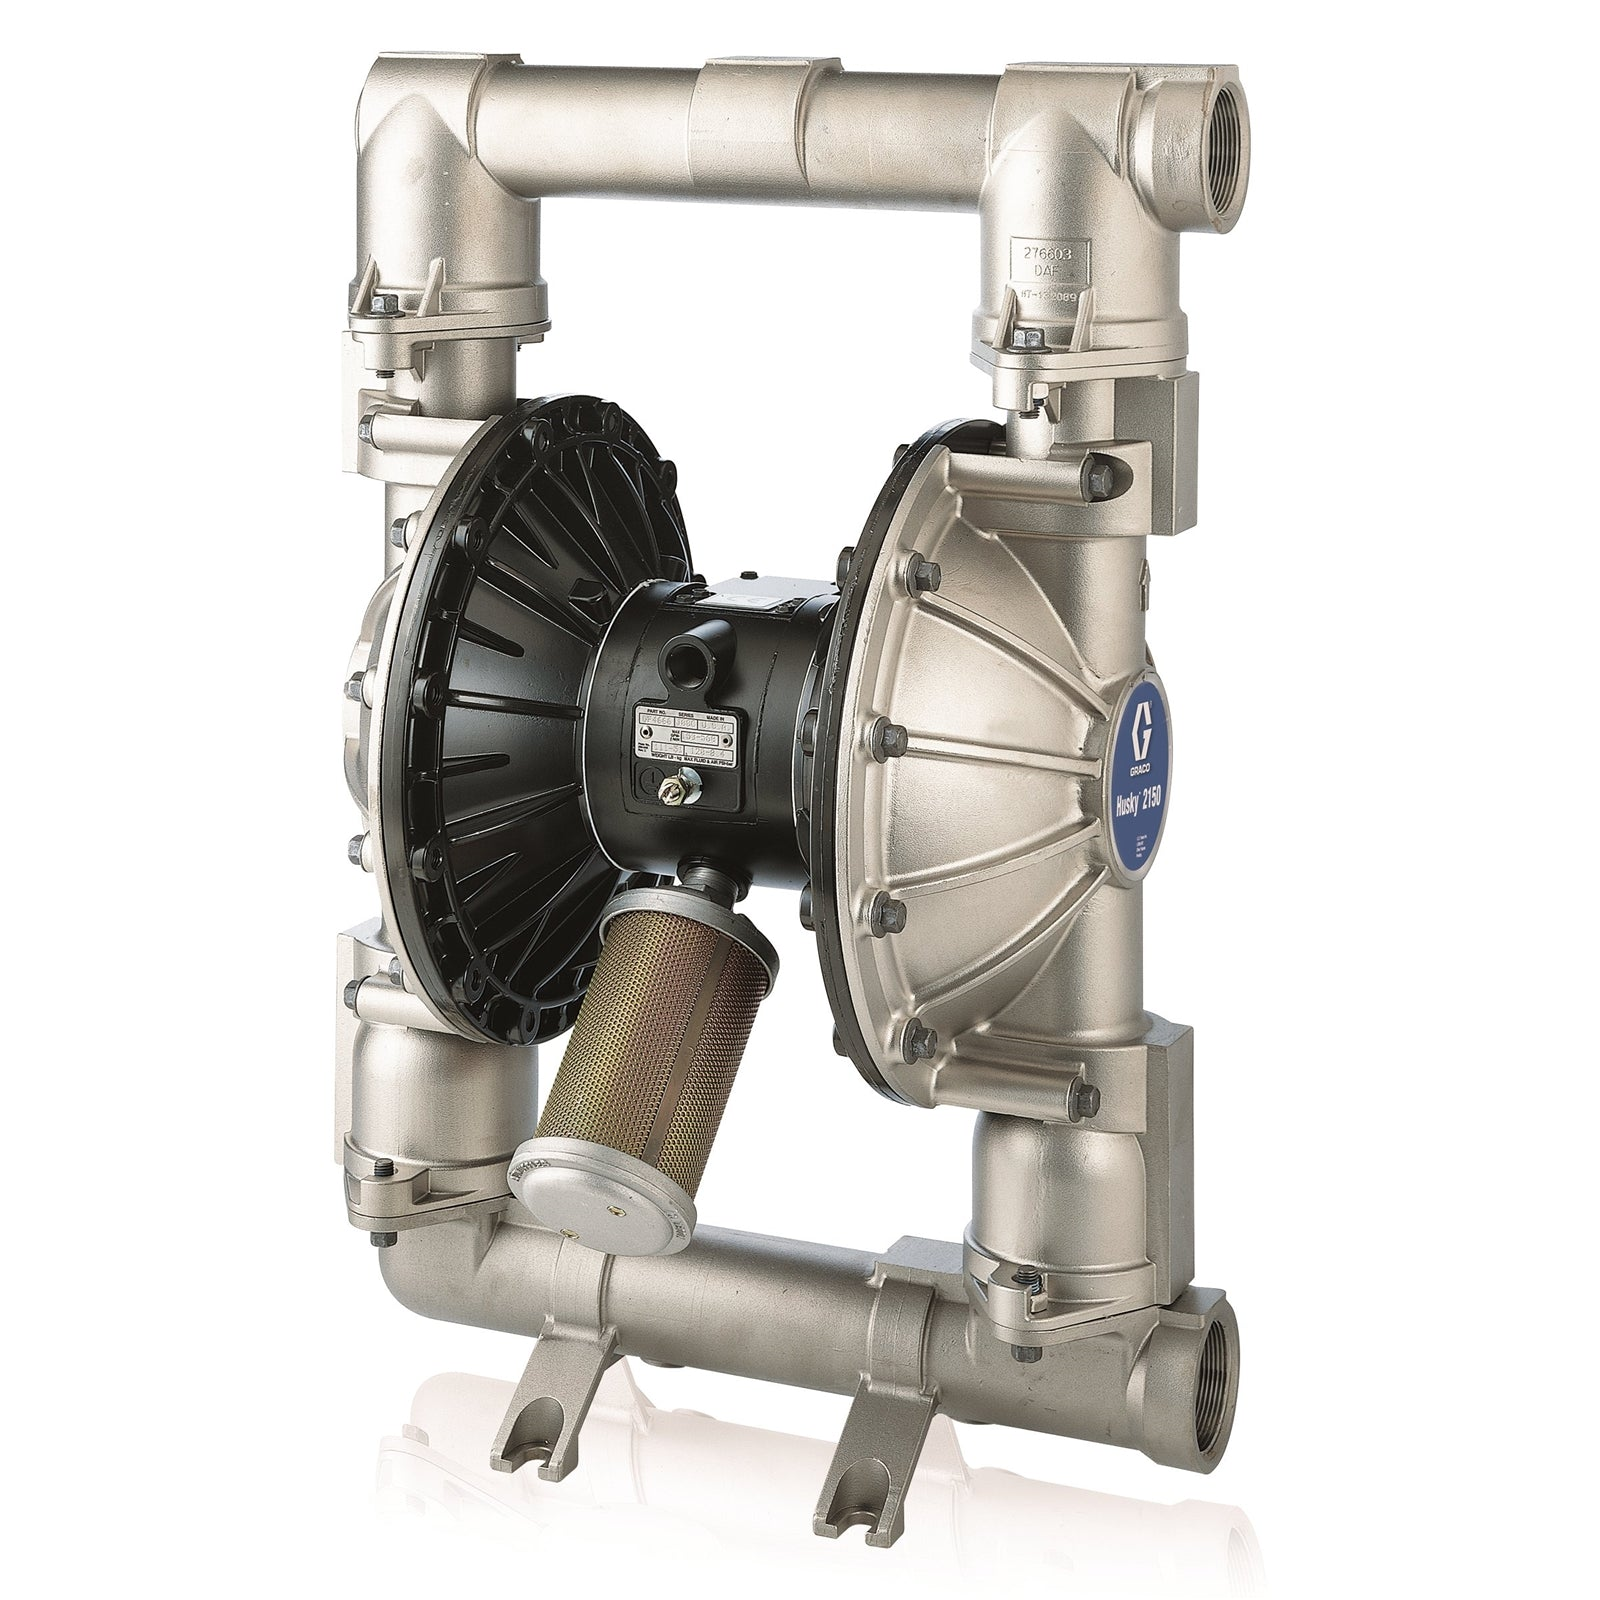 Husky™ 1590 Stainless Steel Air Operated Double Diaphragm Metal Pump DTD311